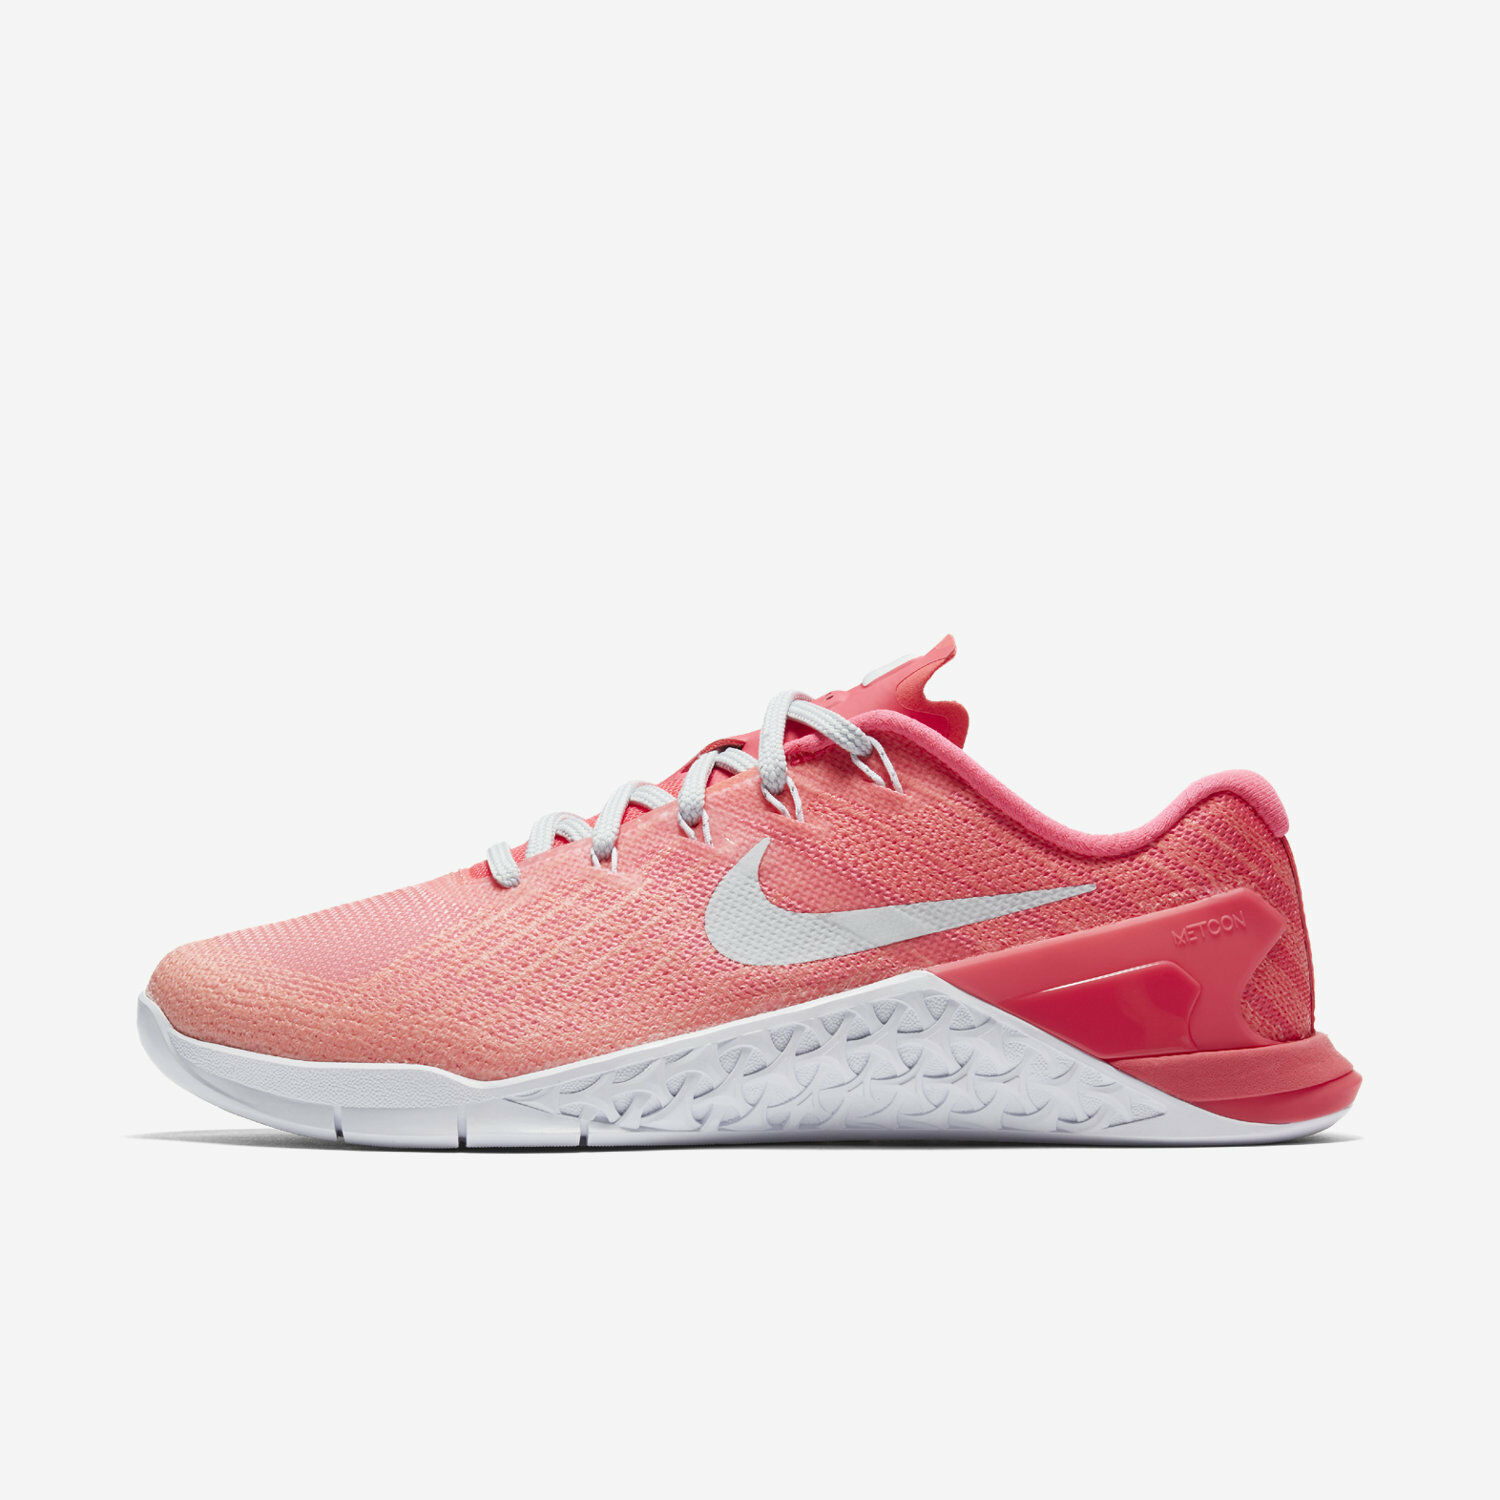 WOMEN'S Nike Metcon 3 FADE Sz 8.5-11 Sunset Glow Platinum 902175-800 FREE SHIP